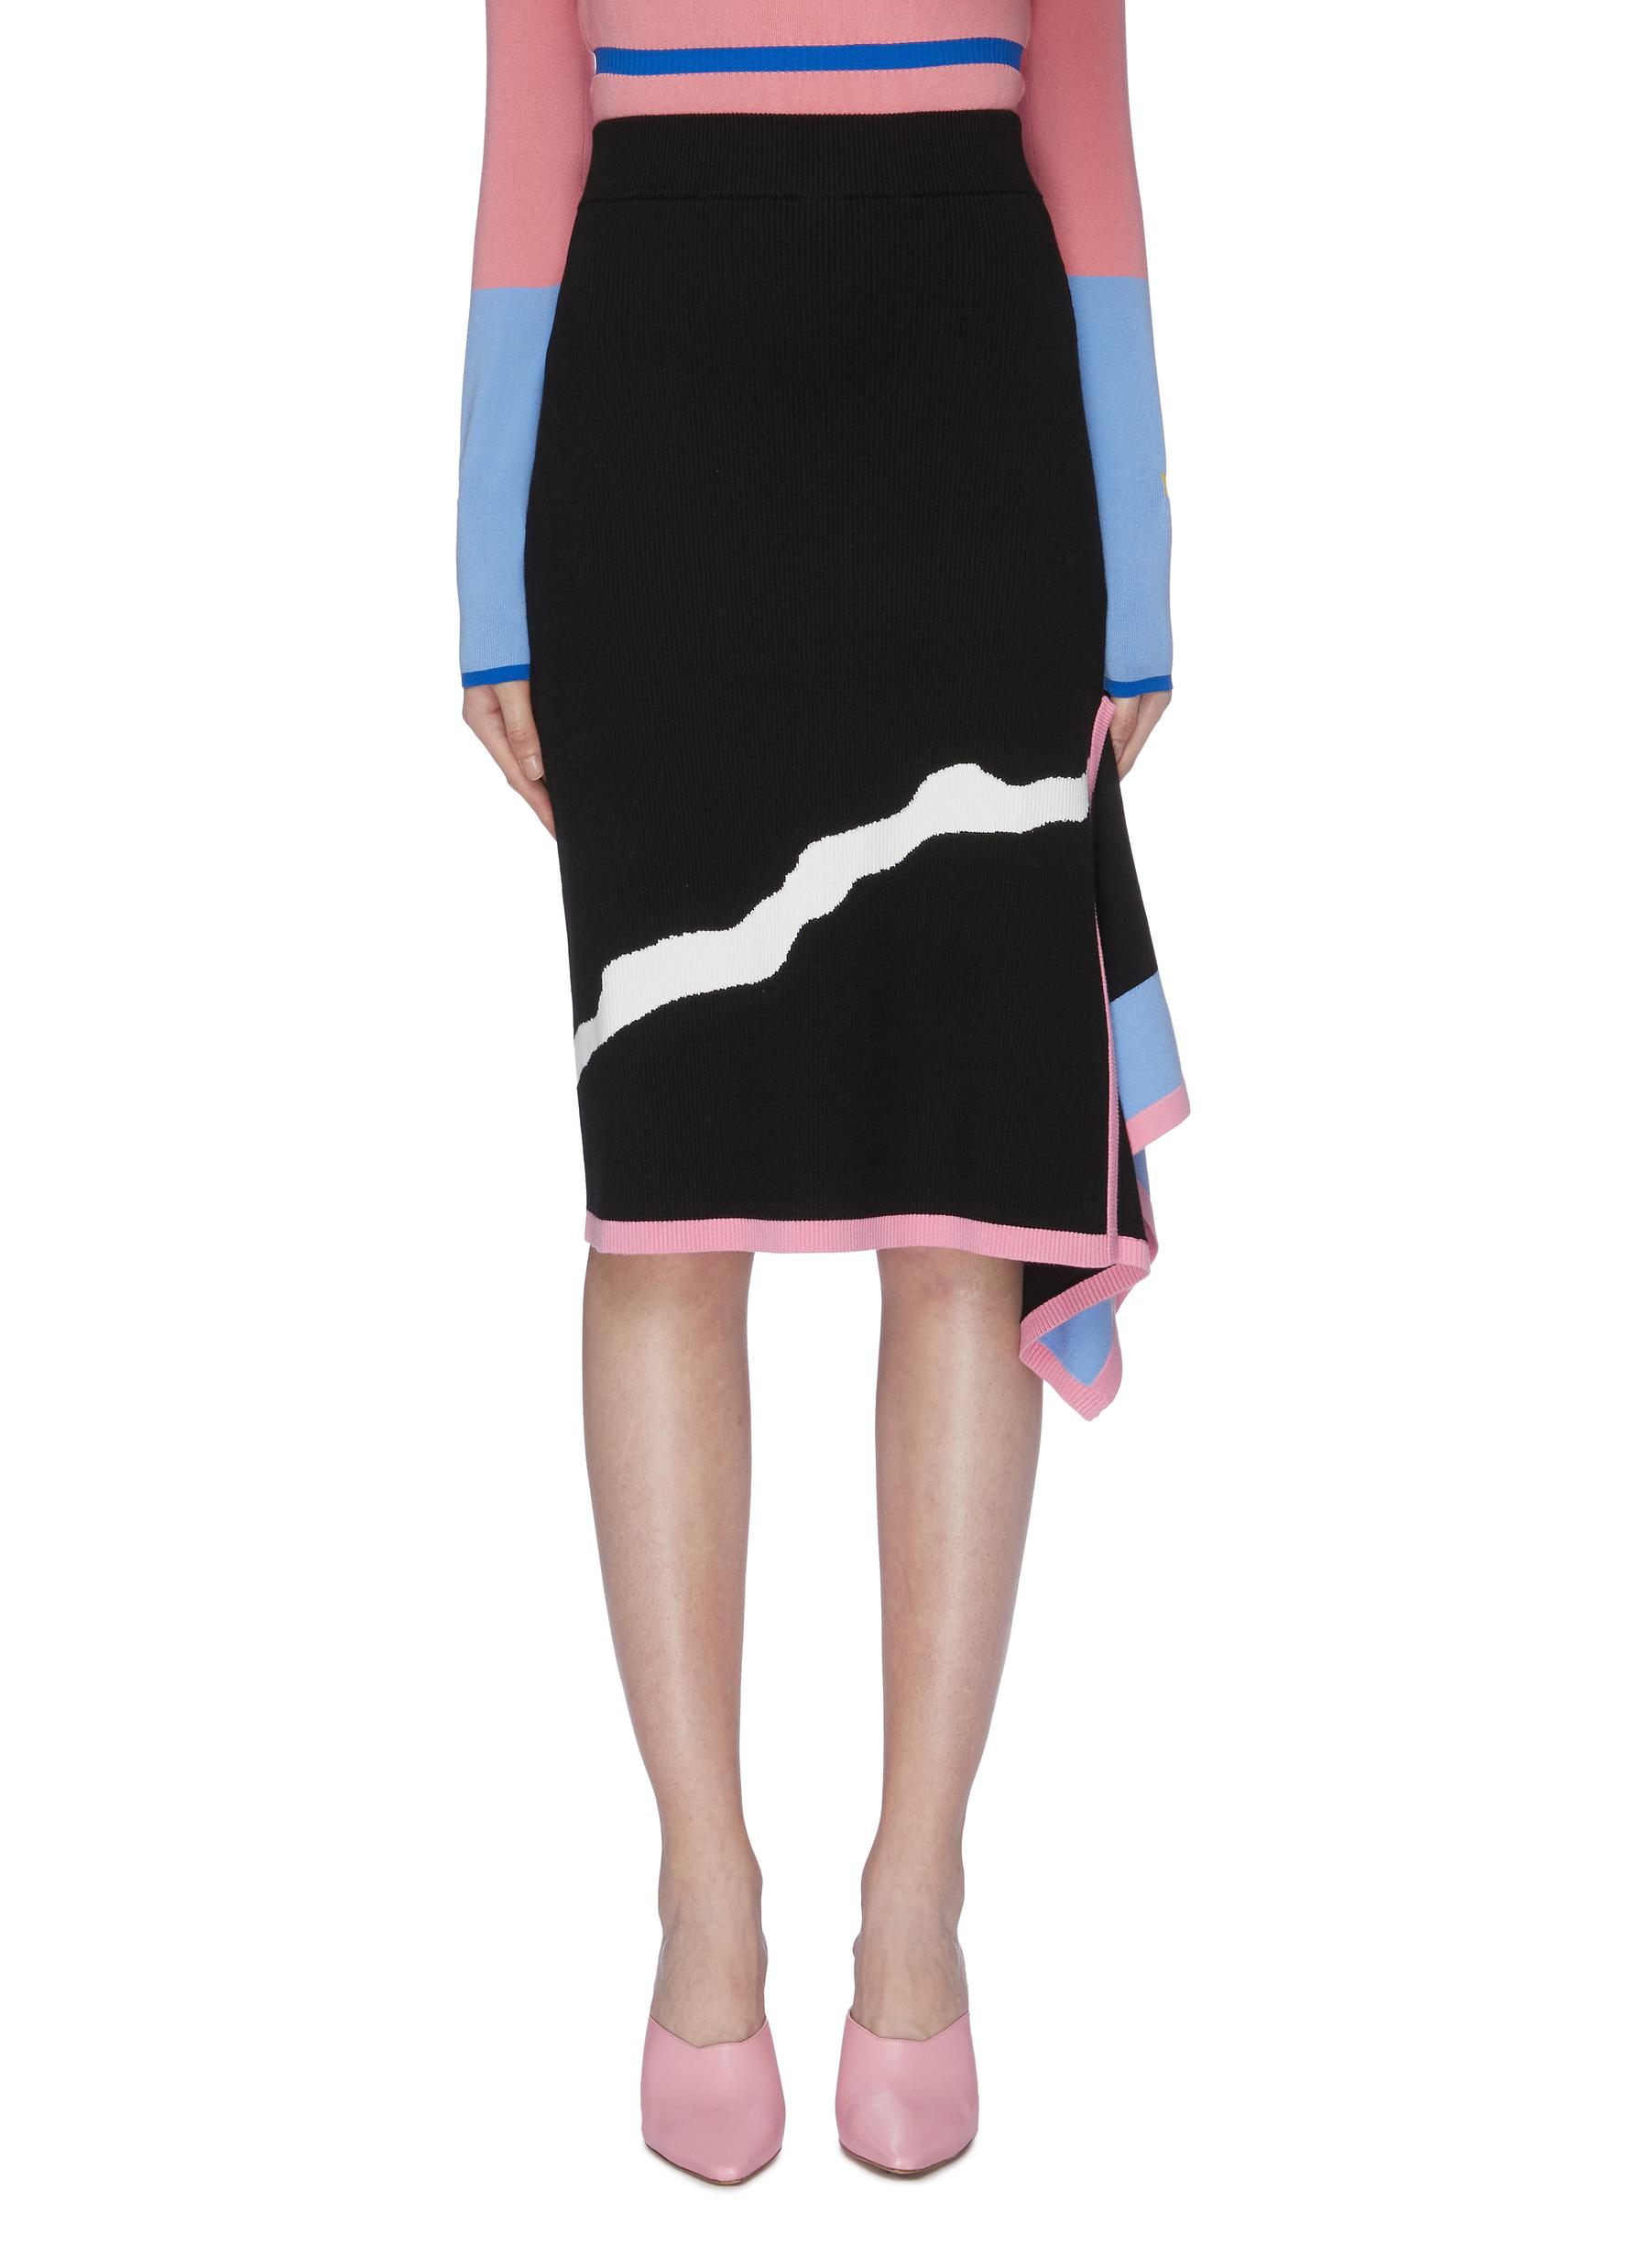 Abstract jacquard drape knit pencil skirt by I-Am-Chen